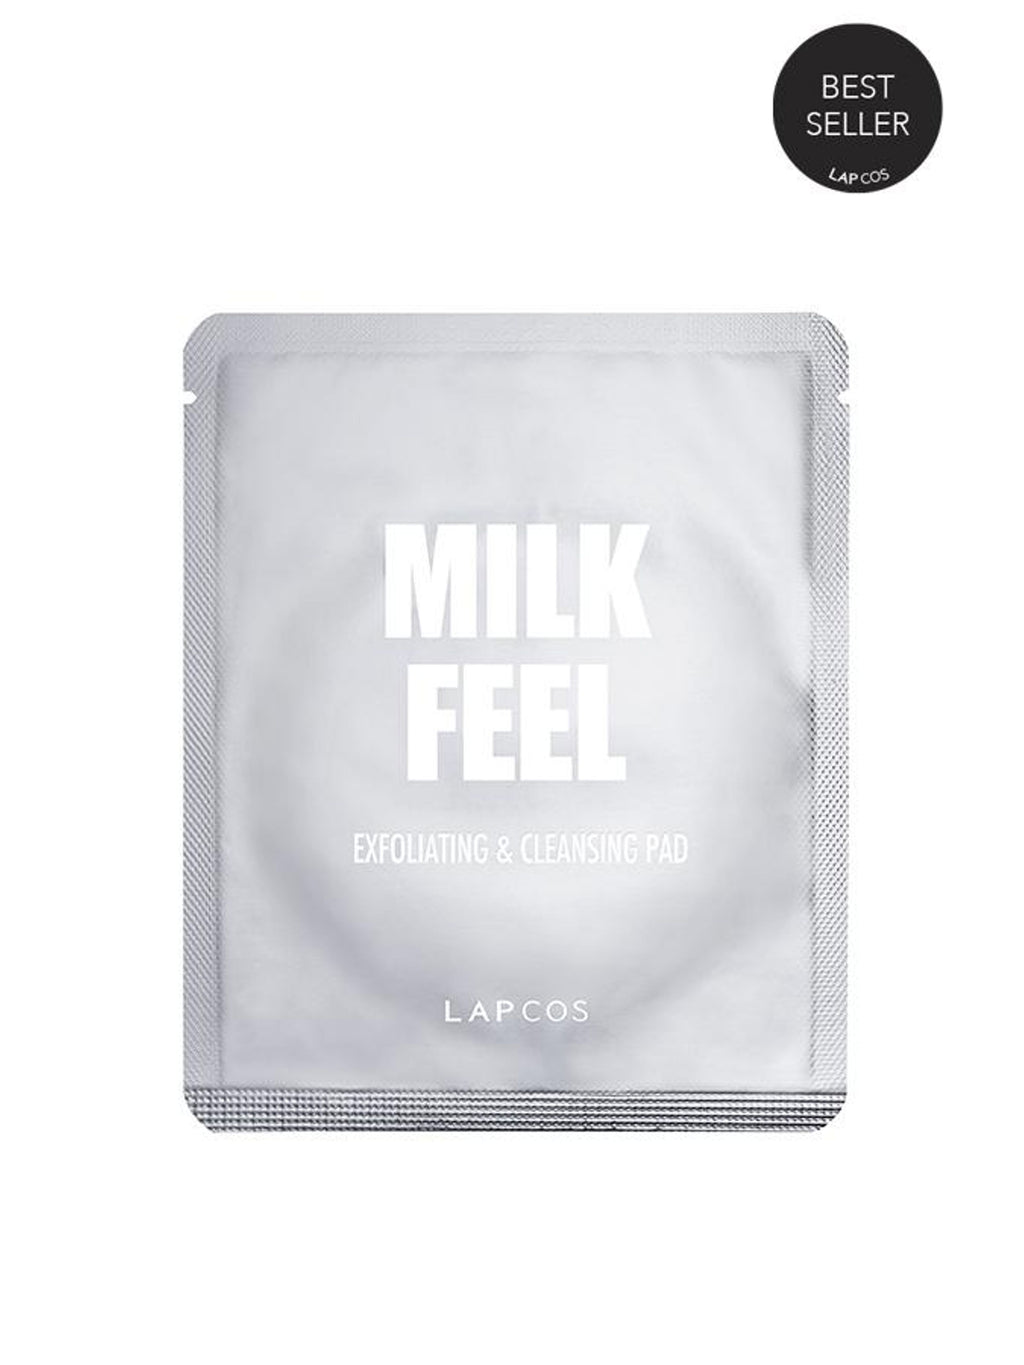 Exfoliating & Cleansing Pad - Milk Feel